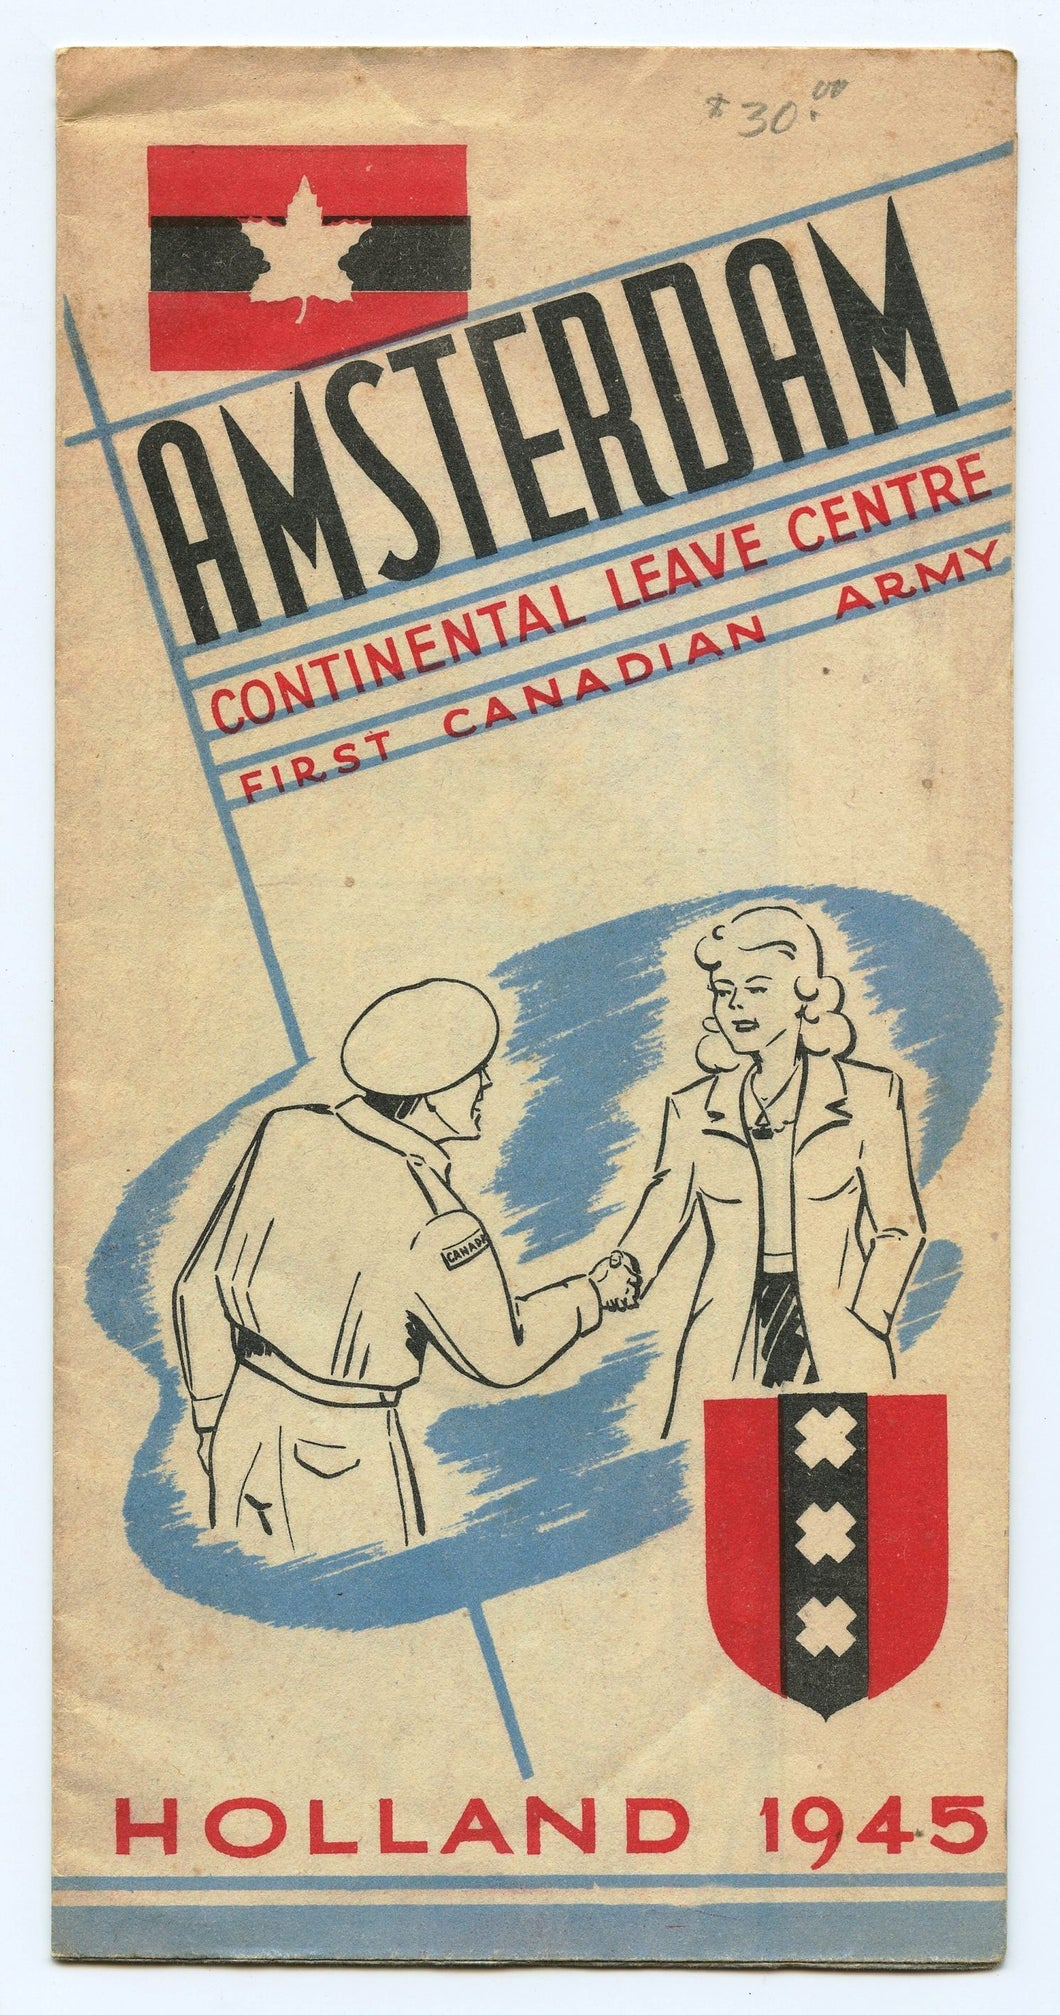 Amsterdam: Continental Leave Centre, First Canadian Army, Holland 1945